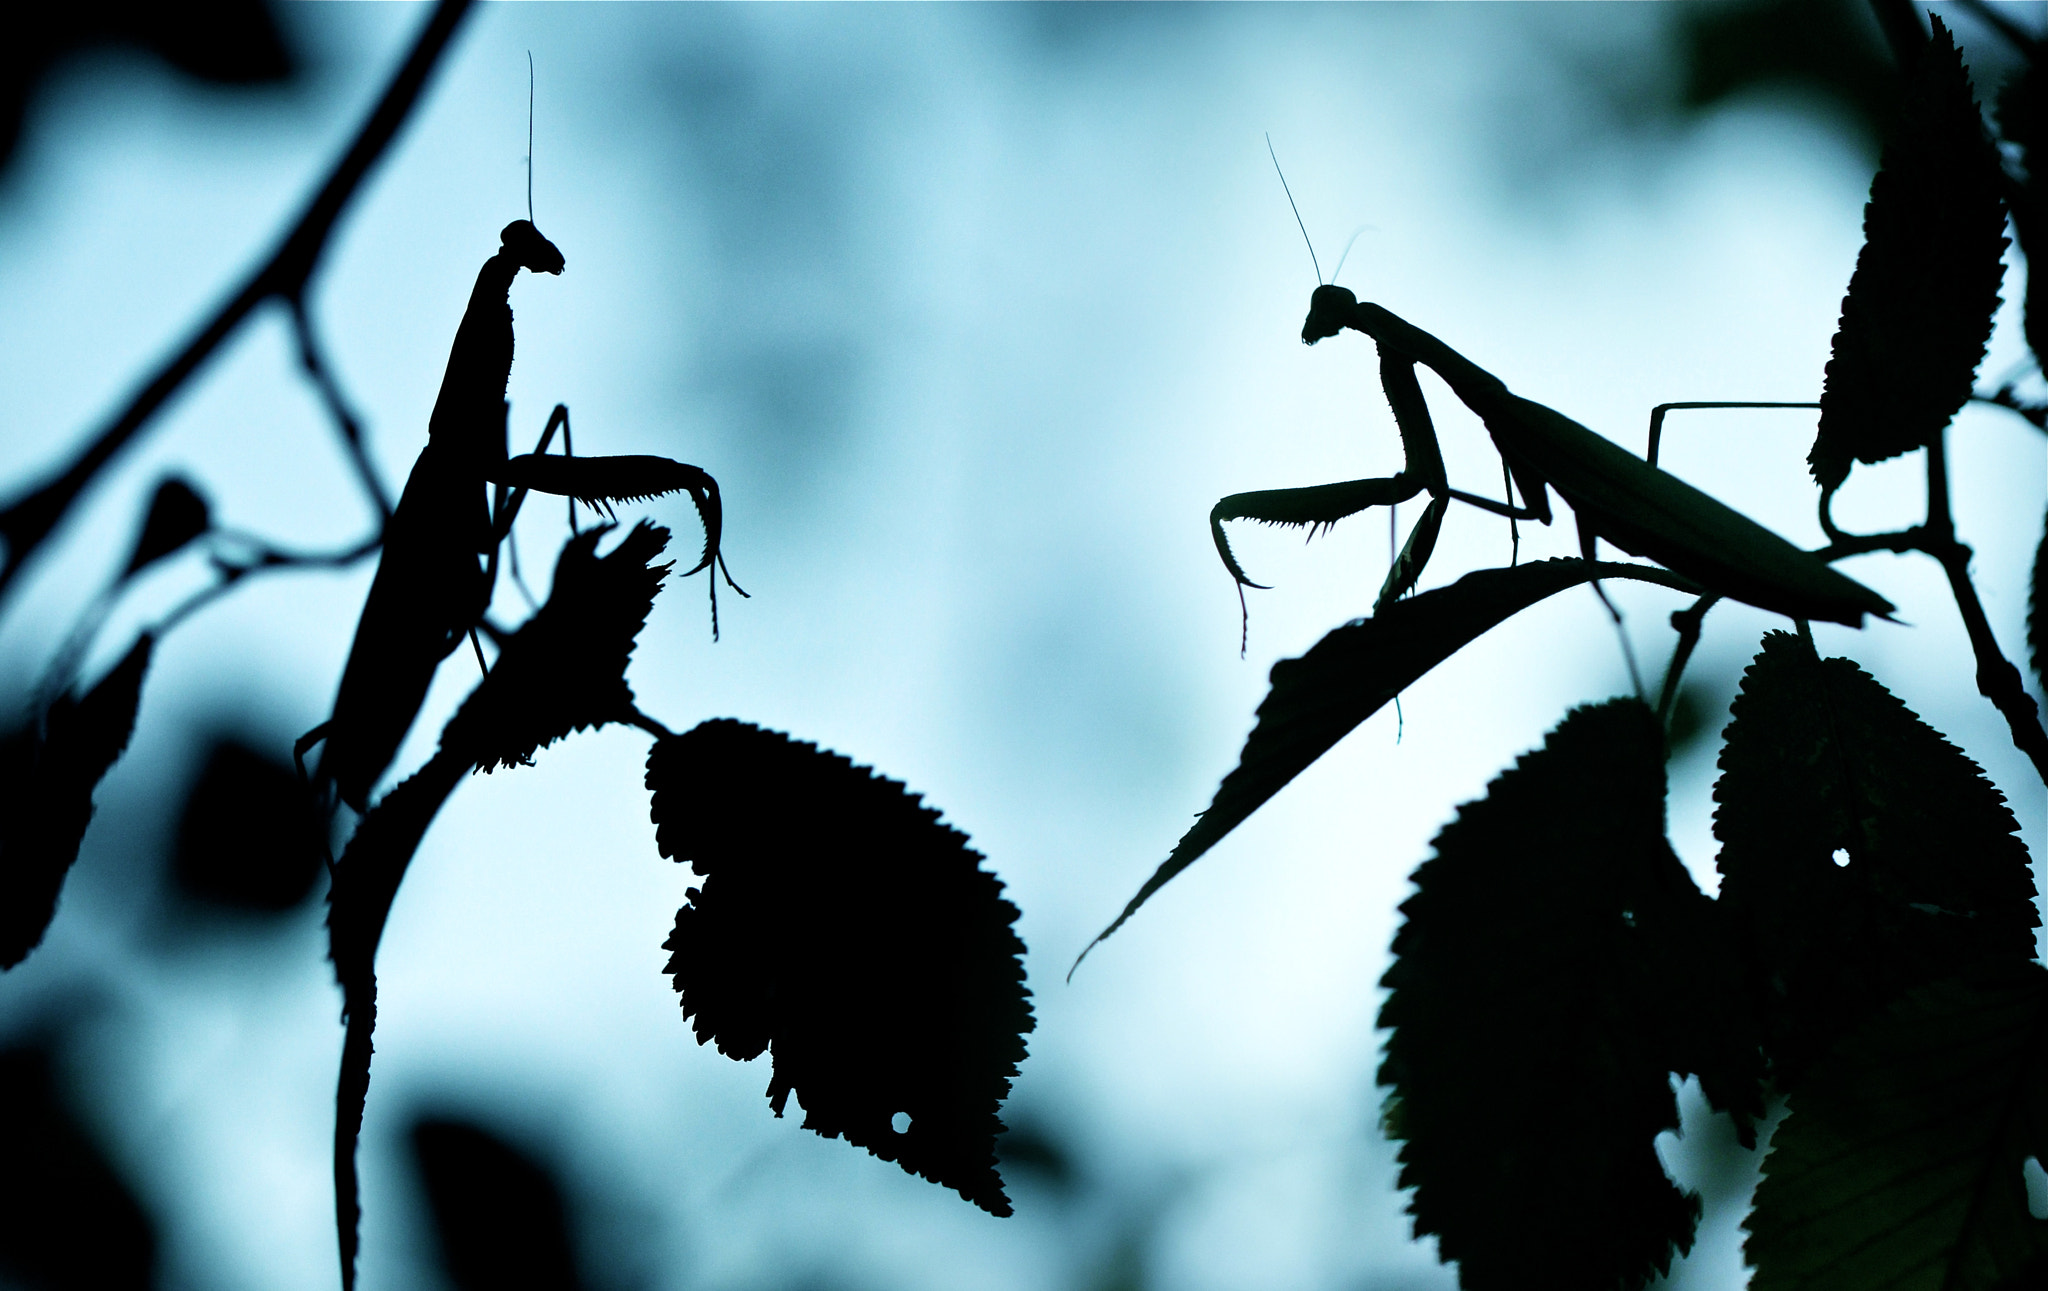 Photograph Mantis Affinity by Sébastien DEL GROSSO on 500px